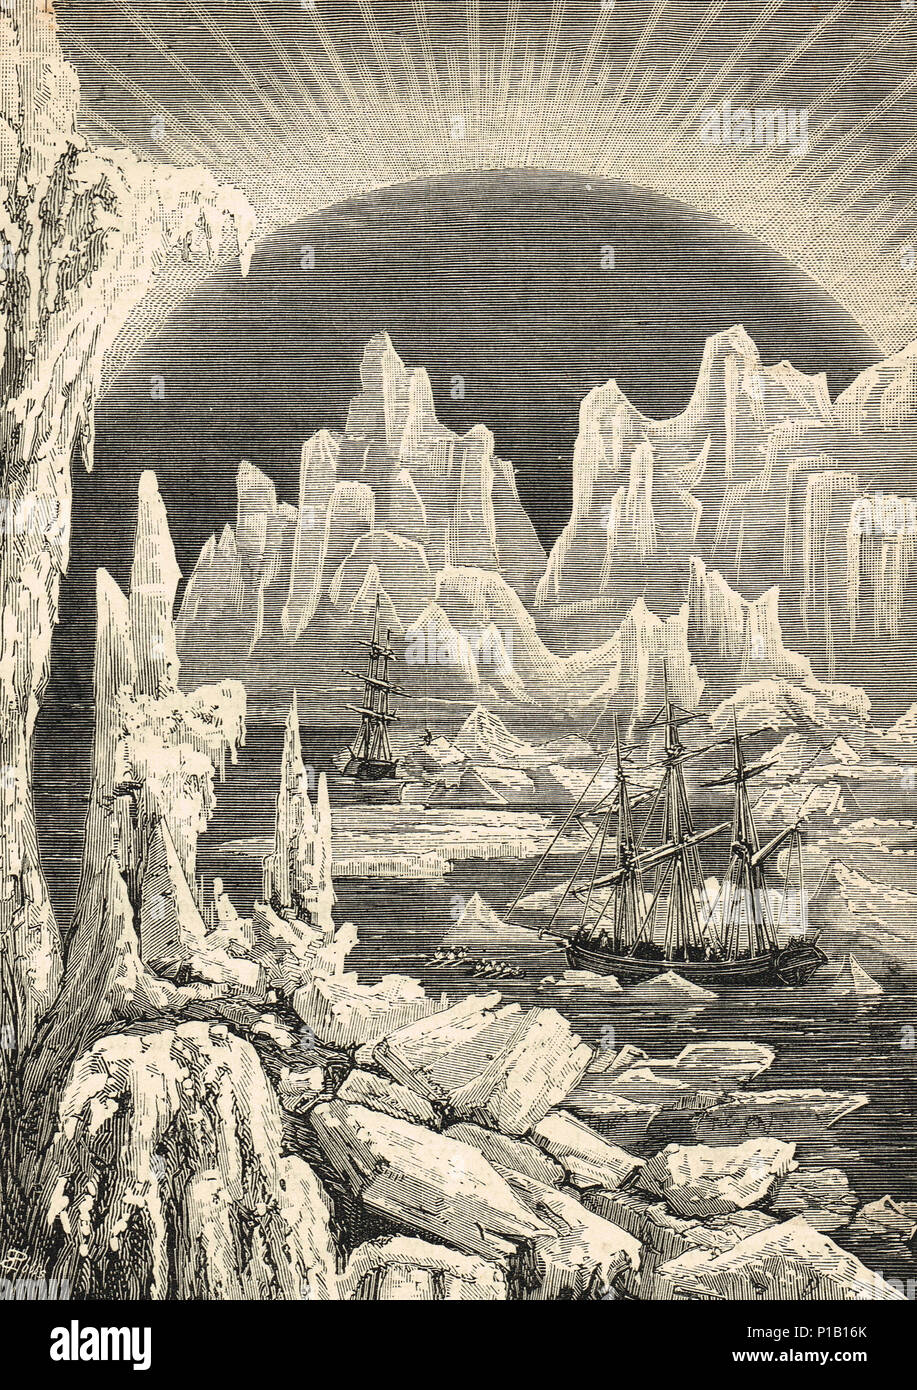 sailing ships among the icebergs, 19th century, searching for the Northwest Passage - Stock Image